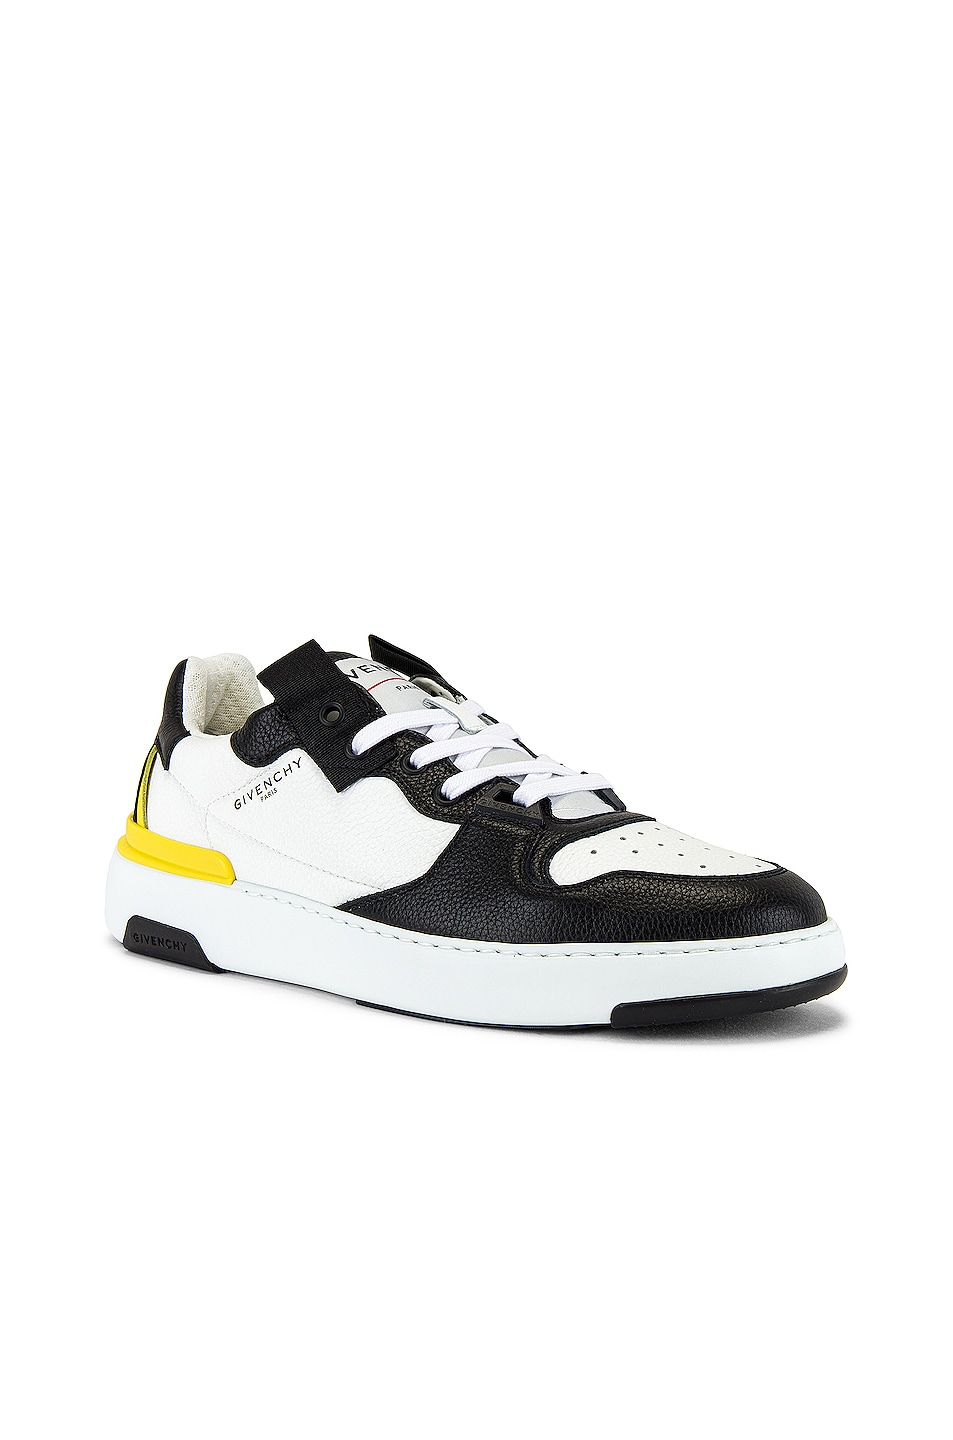 Image 1 of Givenchy Wing Sneaker Low in Black & White & Yellow